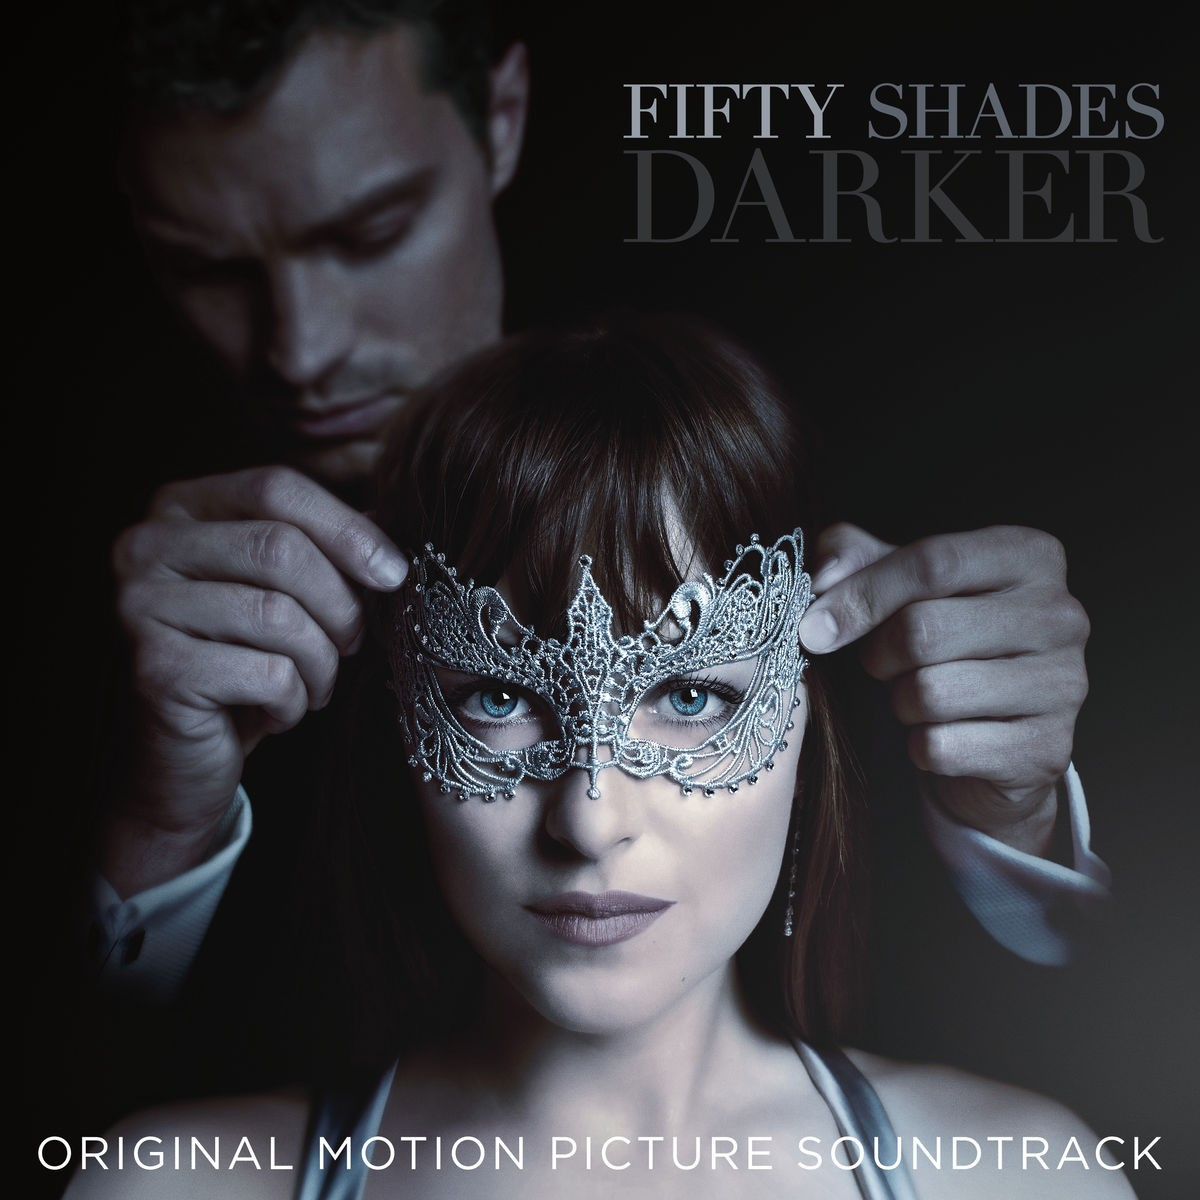 Fifty Shades Darker (Original Motion Picture Soundtrack) CD - 06025 5743020